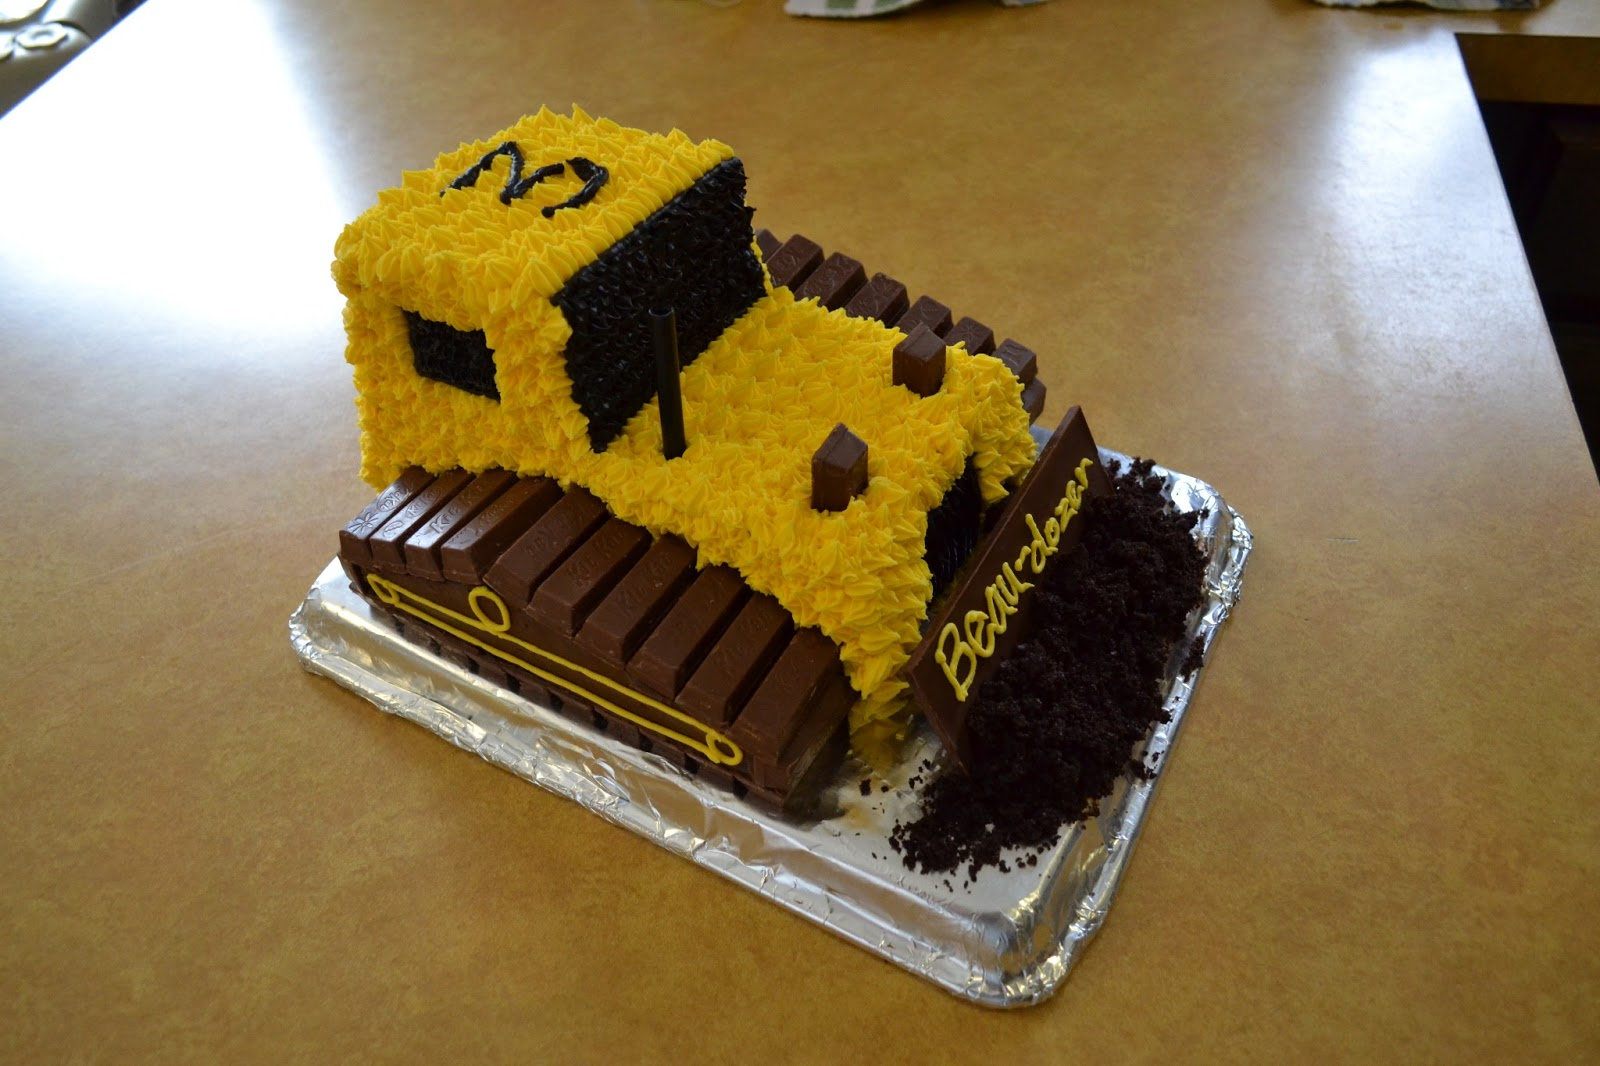 Construction Truck Cake Pan